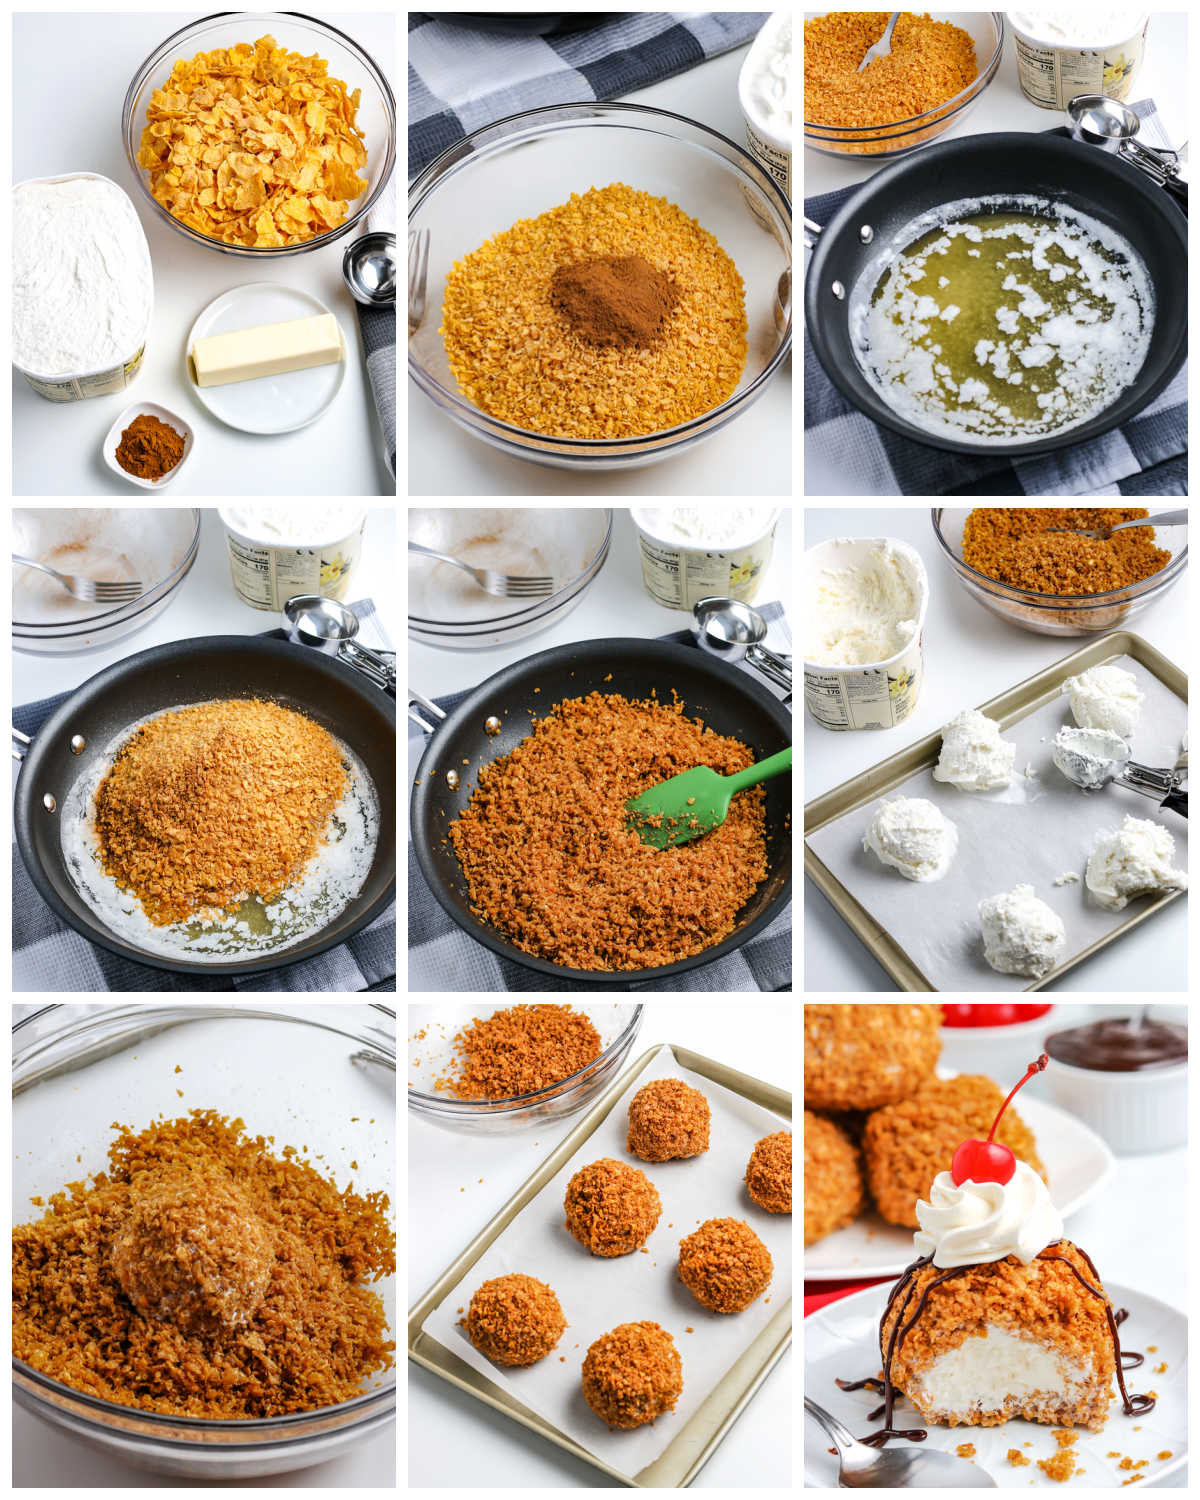 A picture collage of how to make this Fried Ice Cream recipe.